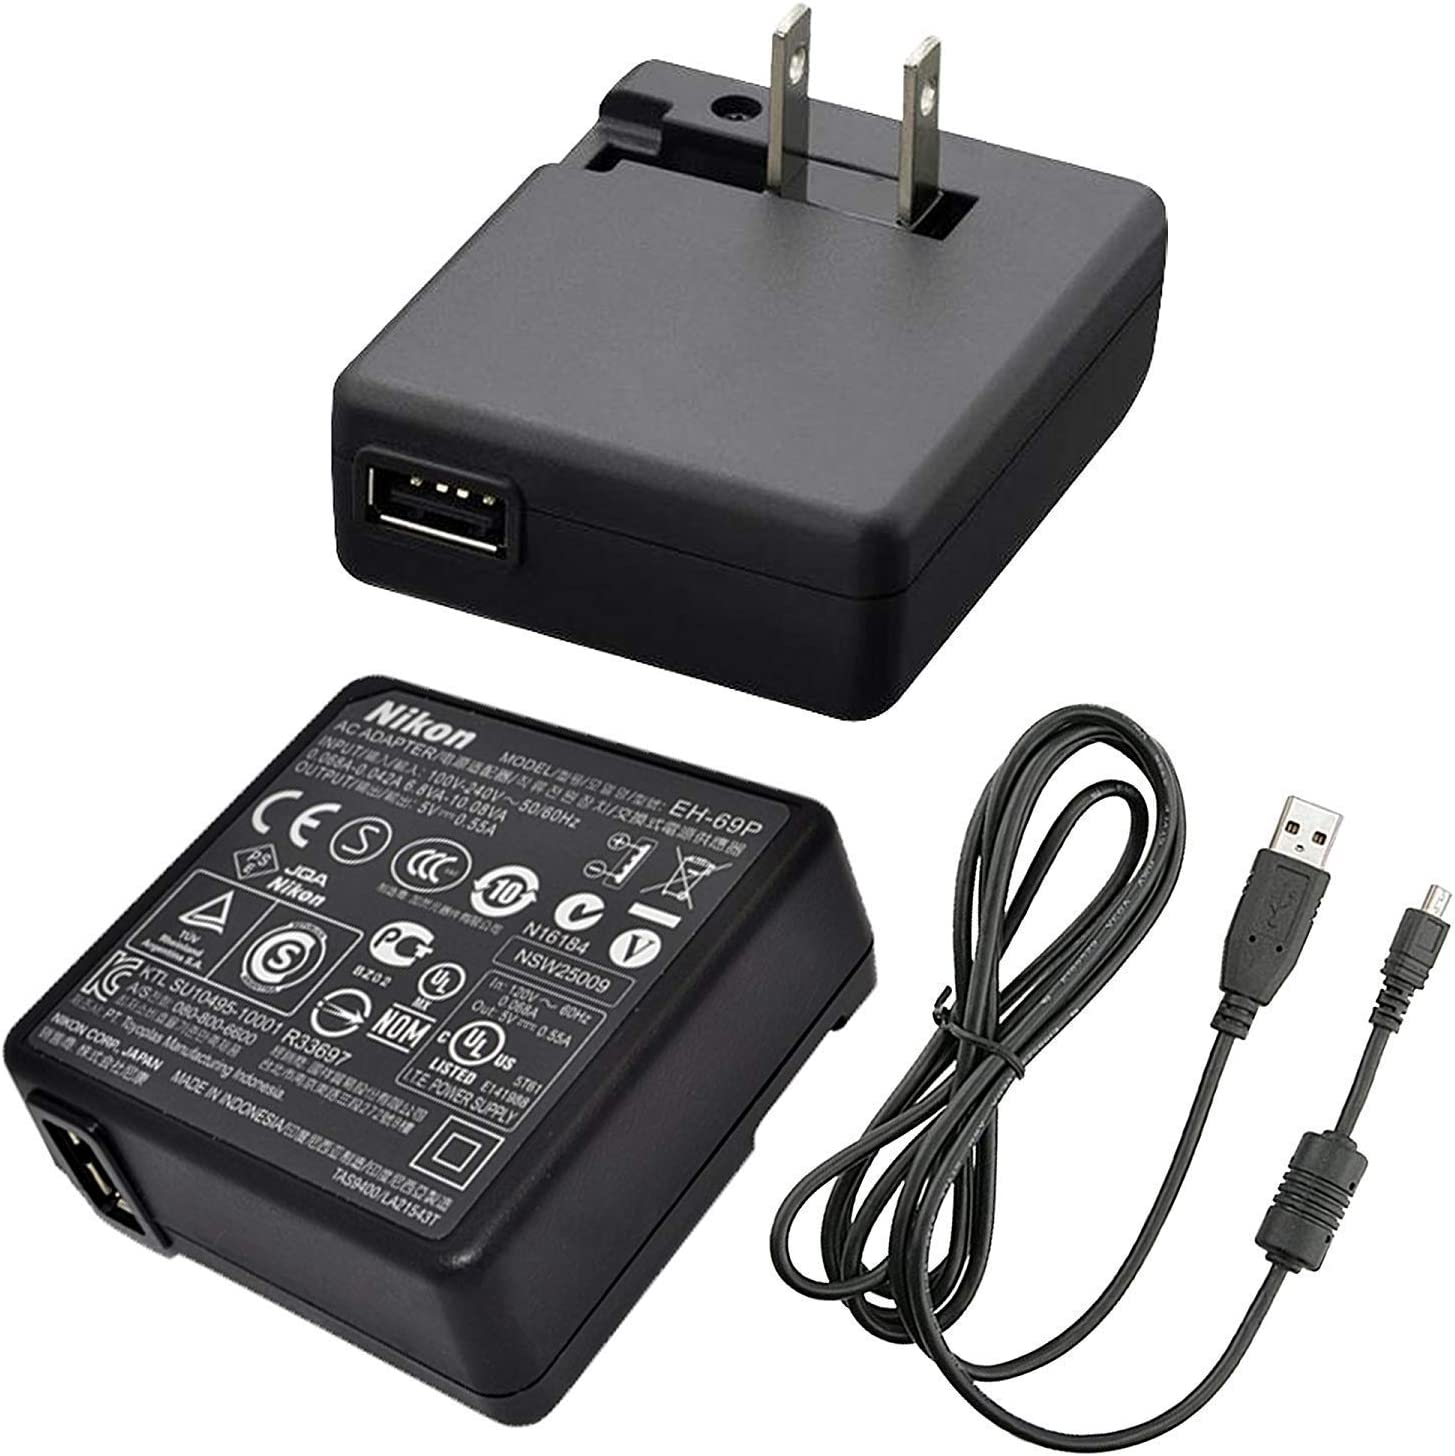 Nikon EH-71P AC Power Supply Adapter Charger for CoolPix S6800 and S5300 Digital Cameras